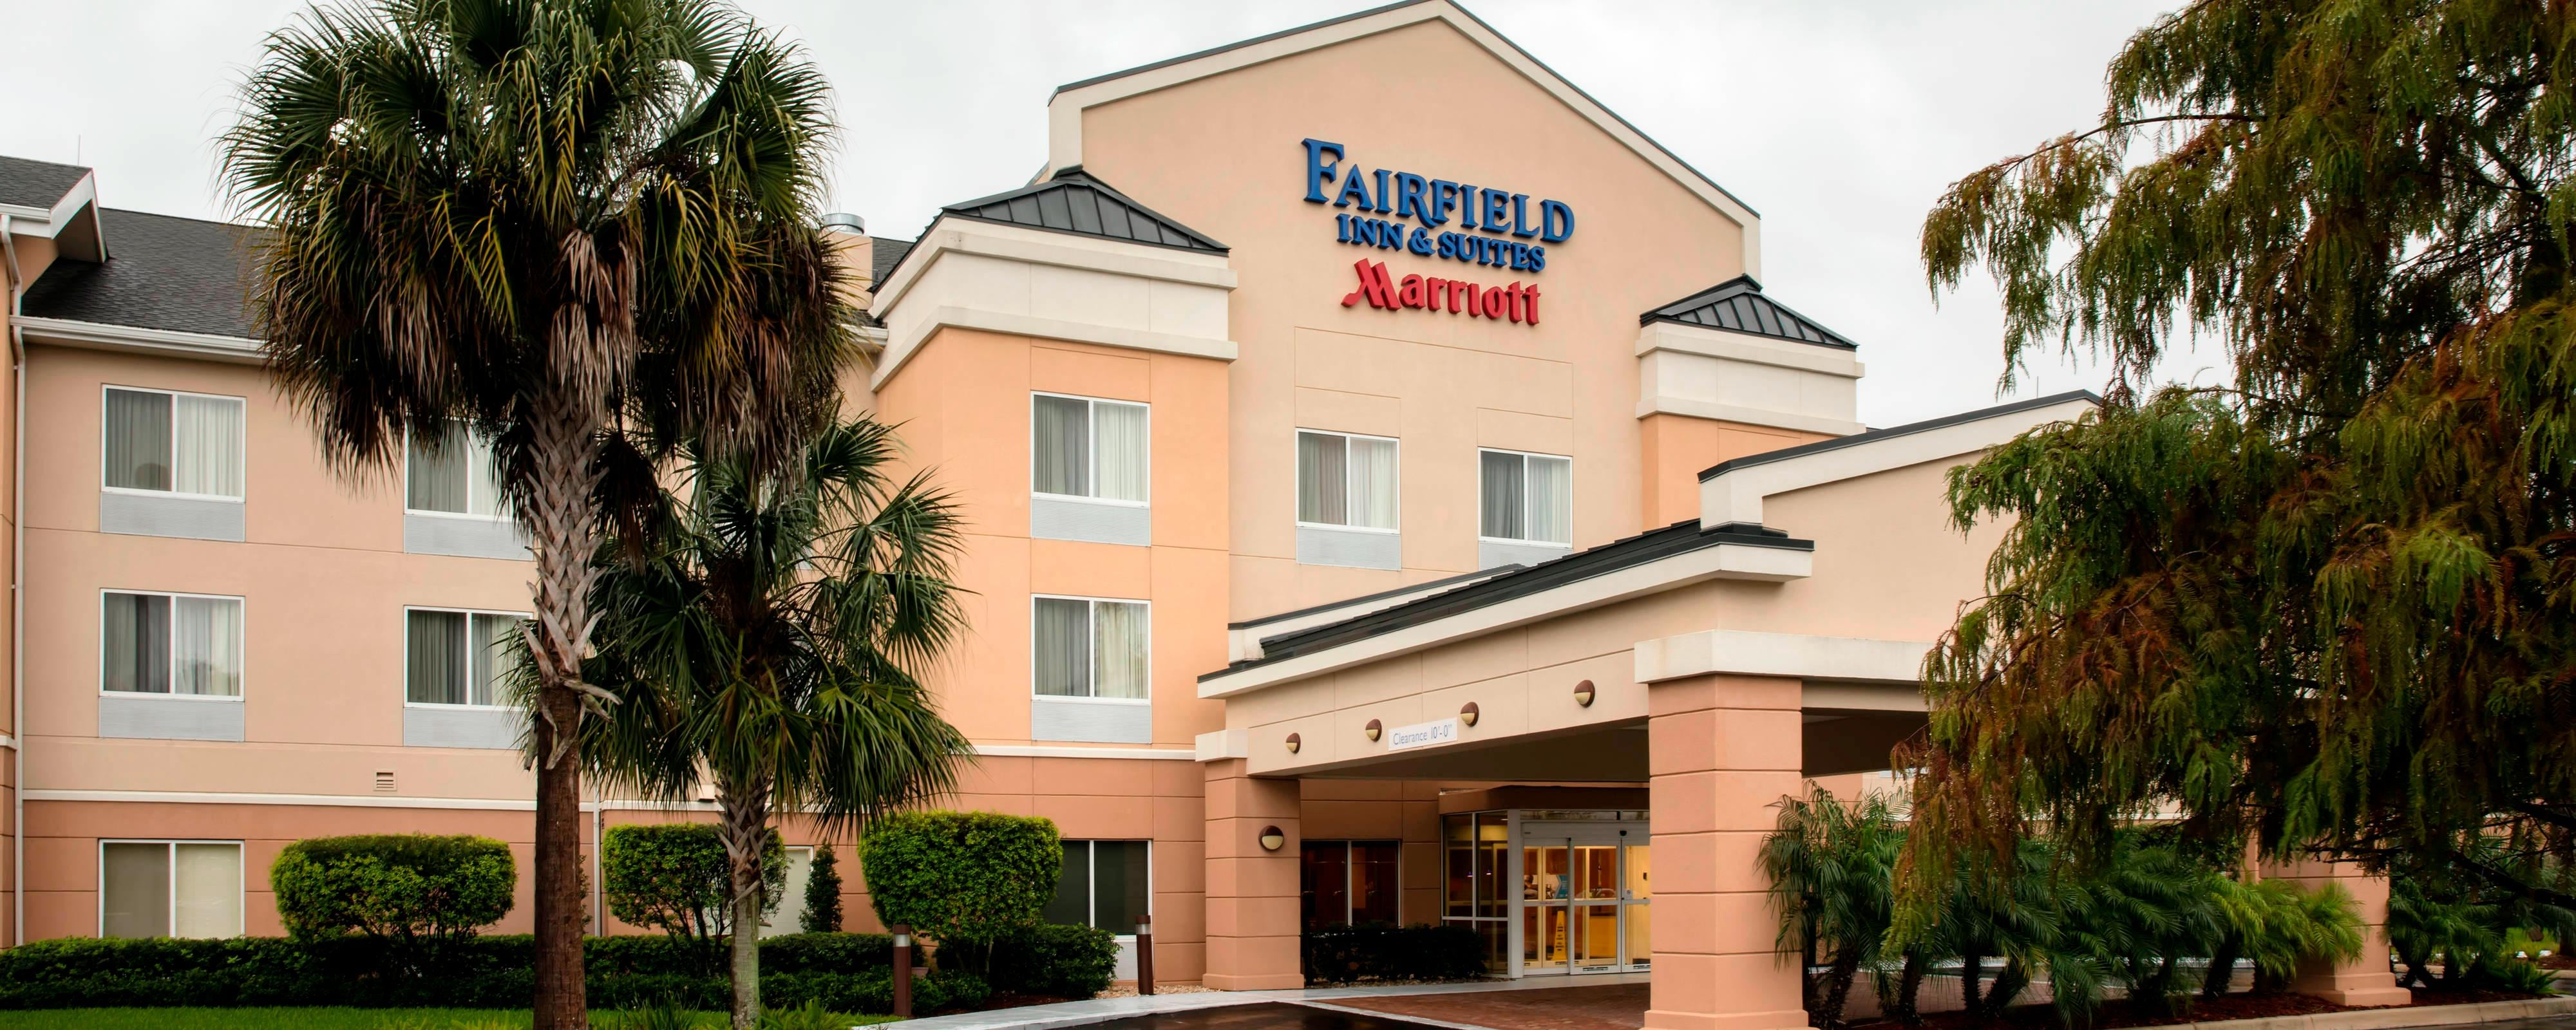 Plant City Zip Code Map.Hotels In Plant City Fl Fairfield Inn Suites Lakeland Plant City